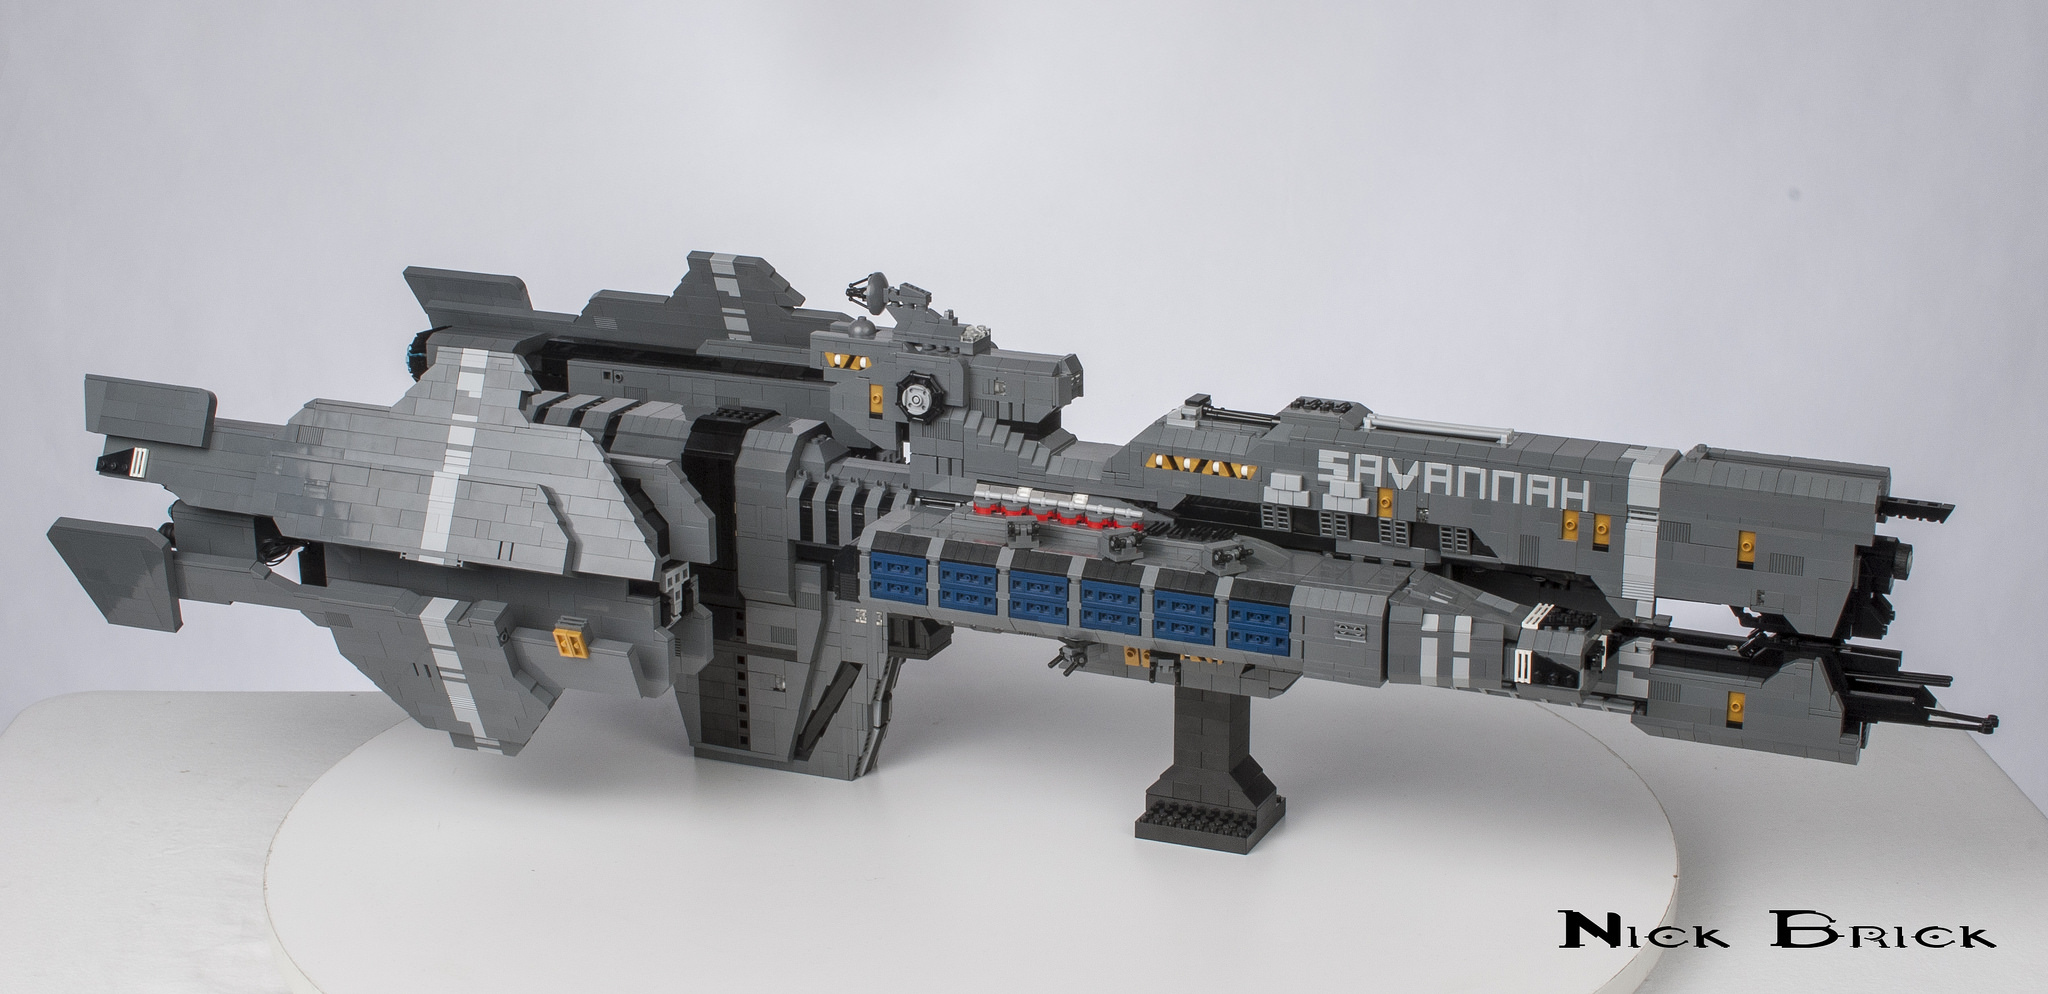 UNSC Savannah 10